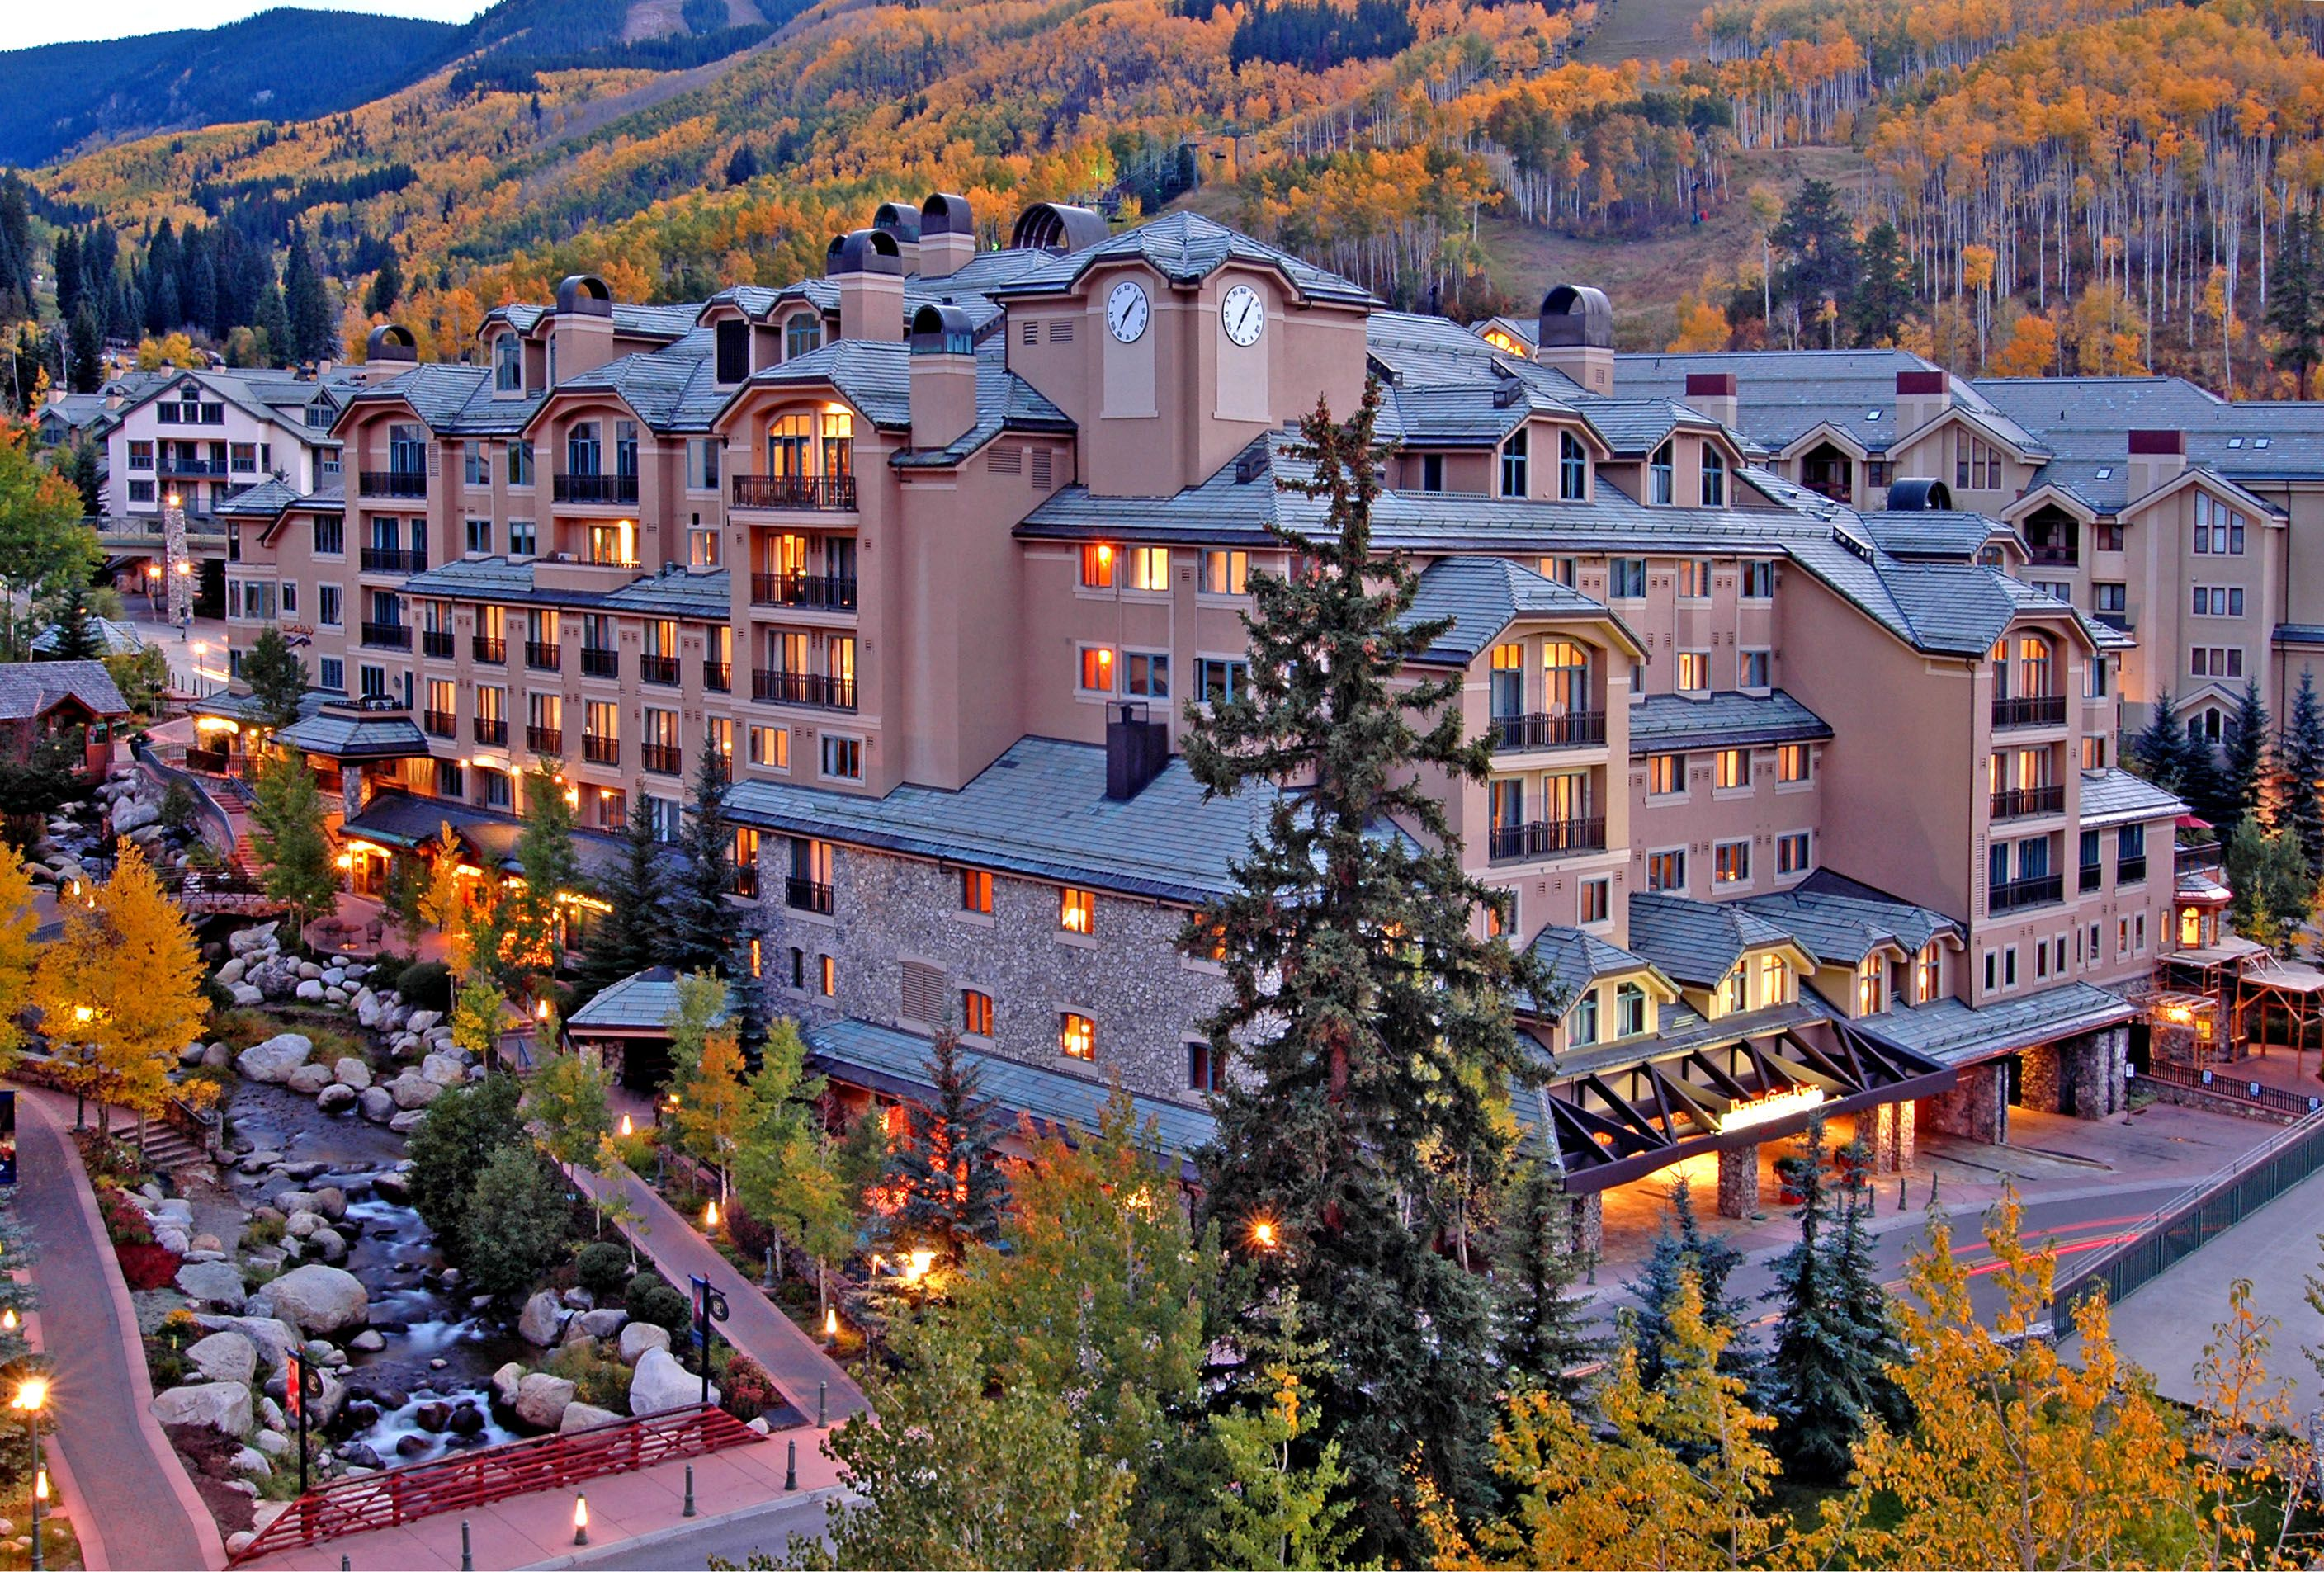 Visit the beaver creek lodge in colorado over christmas